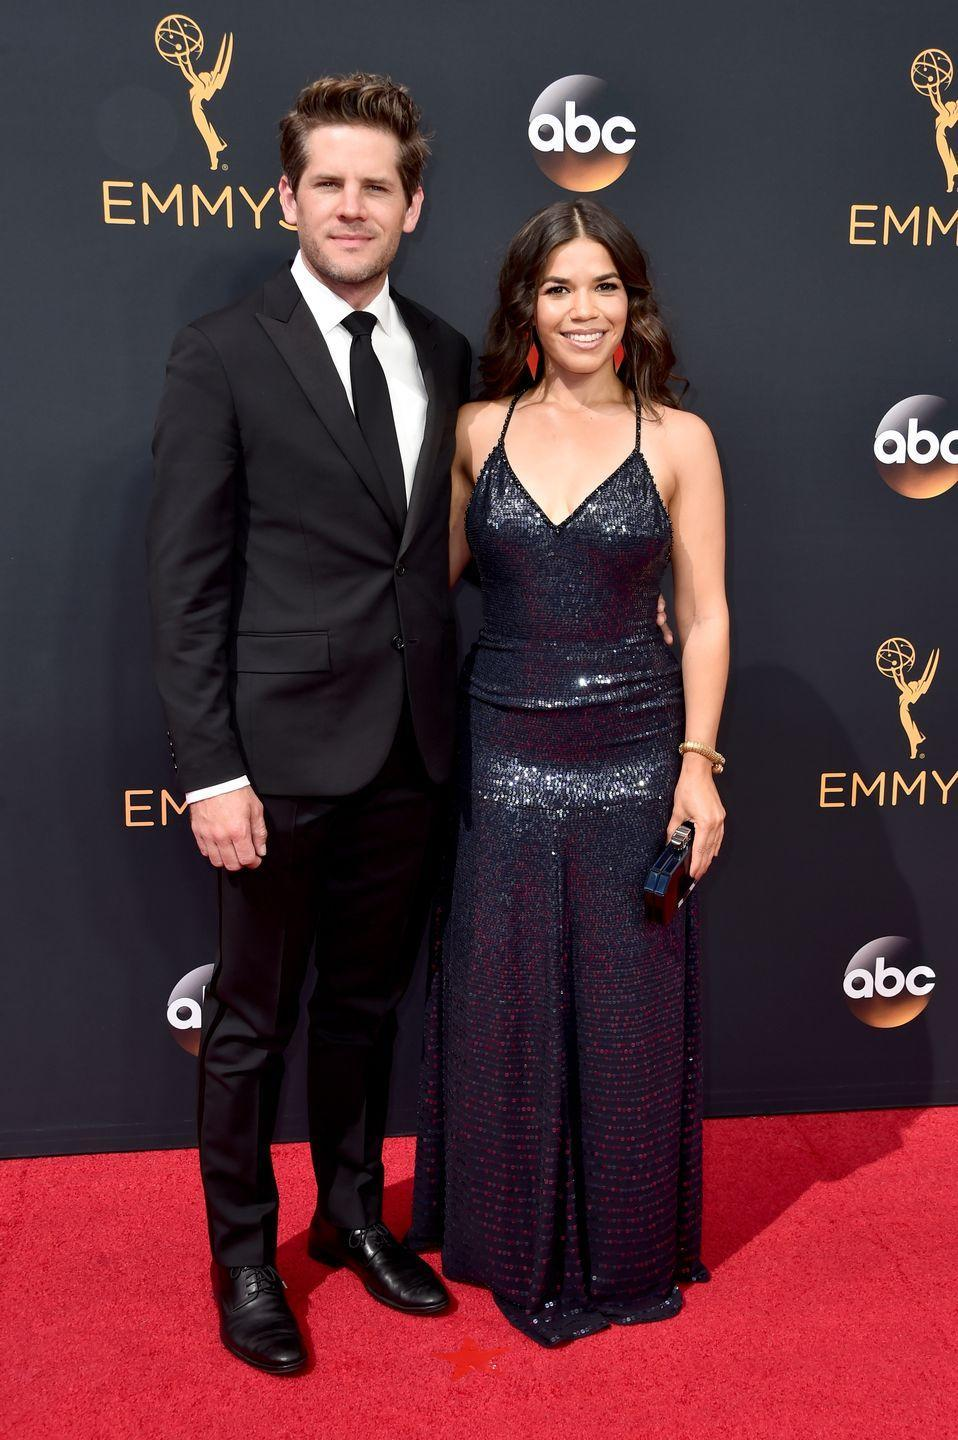 """<p>America Ferrera and her husband of nine years, Ryan Piers Williams, met when he cast her in one of his student films while they were <a href=""""https://www.bustle.com/p/how-did-america-ferrera-her-husband-ryan-piers-williams-meet-its-such-a-hollywood-story-7744259"""" rel=""""nofollow noopener"""" target=""""_blank"""" data-ylk=""""slk:studying at the University of Southern California"""" class=""""link rapid-noclick-resp"""">studying at the University of Southern California</a>. They started dating in 2005, shortly after Ferrera's career took off with <em>The Sisterhood of the Traveling Pants </em>and <em>Ugly Betty</em>, and got married in 2011.</p>"""